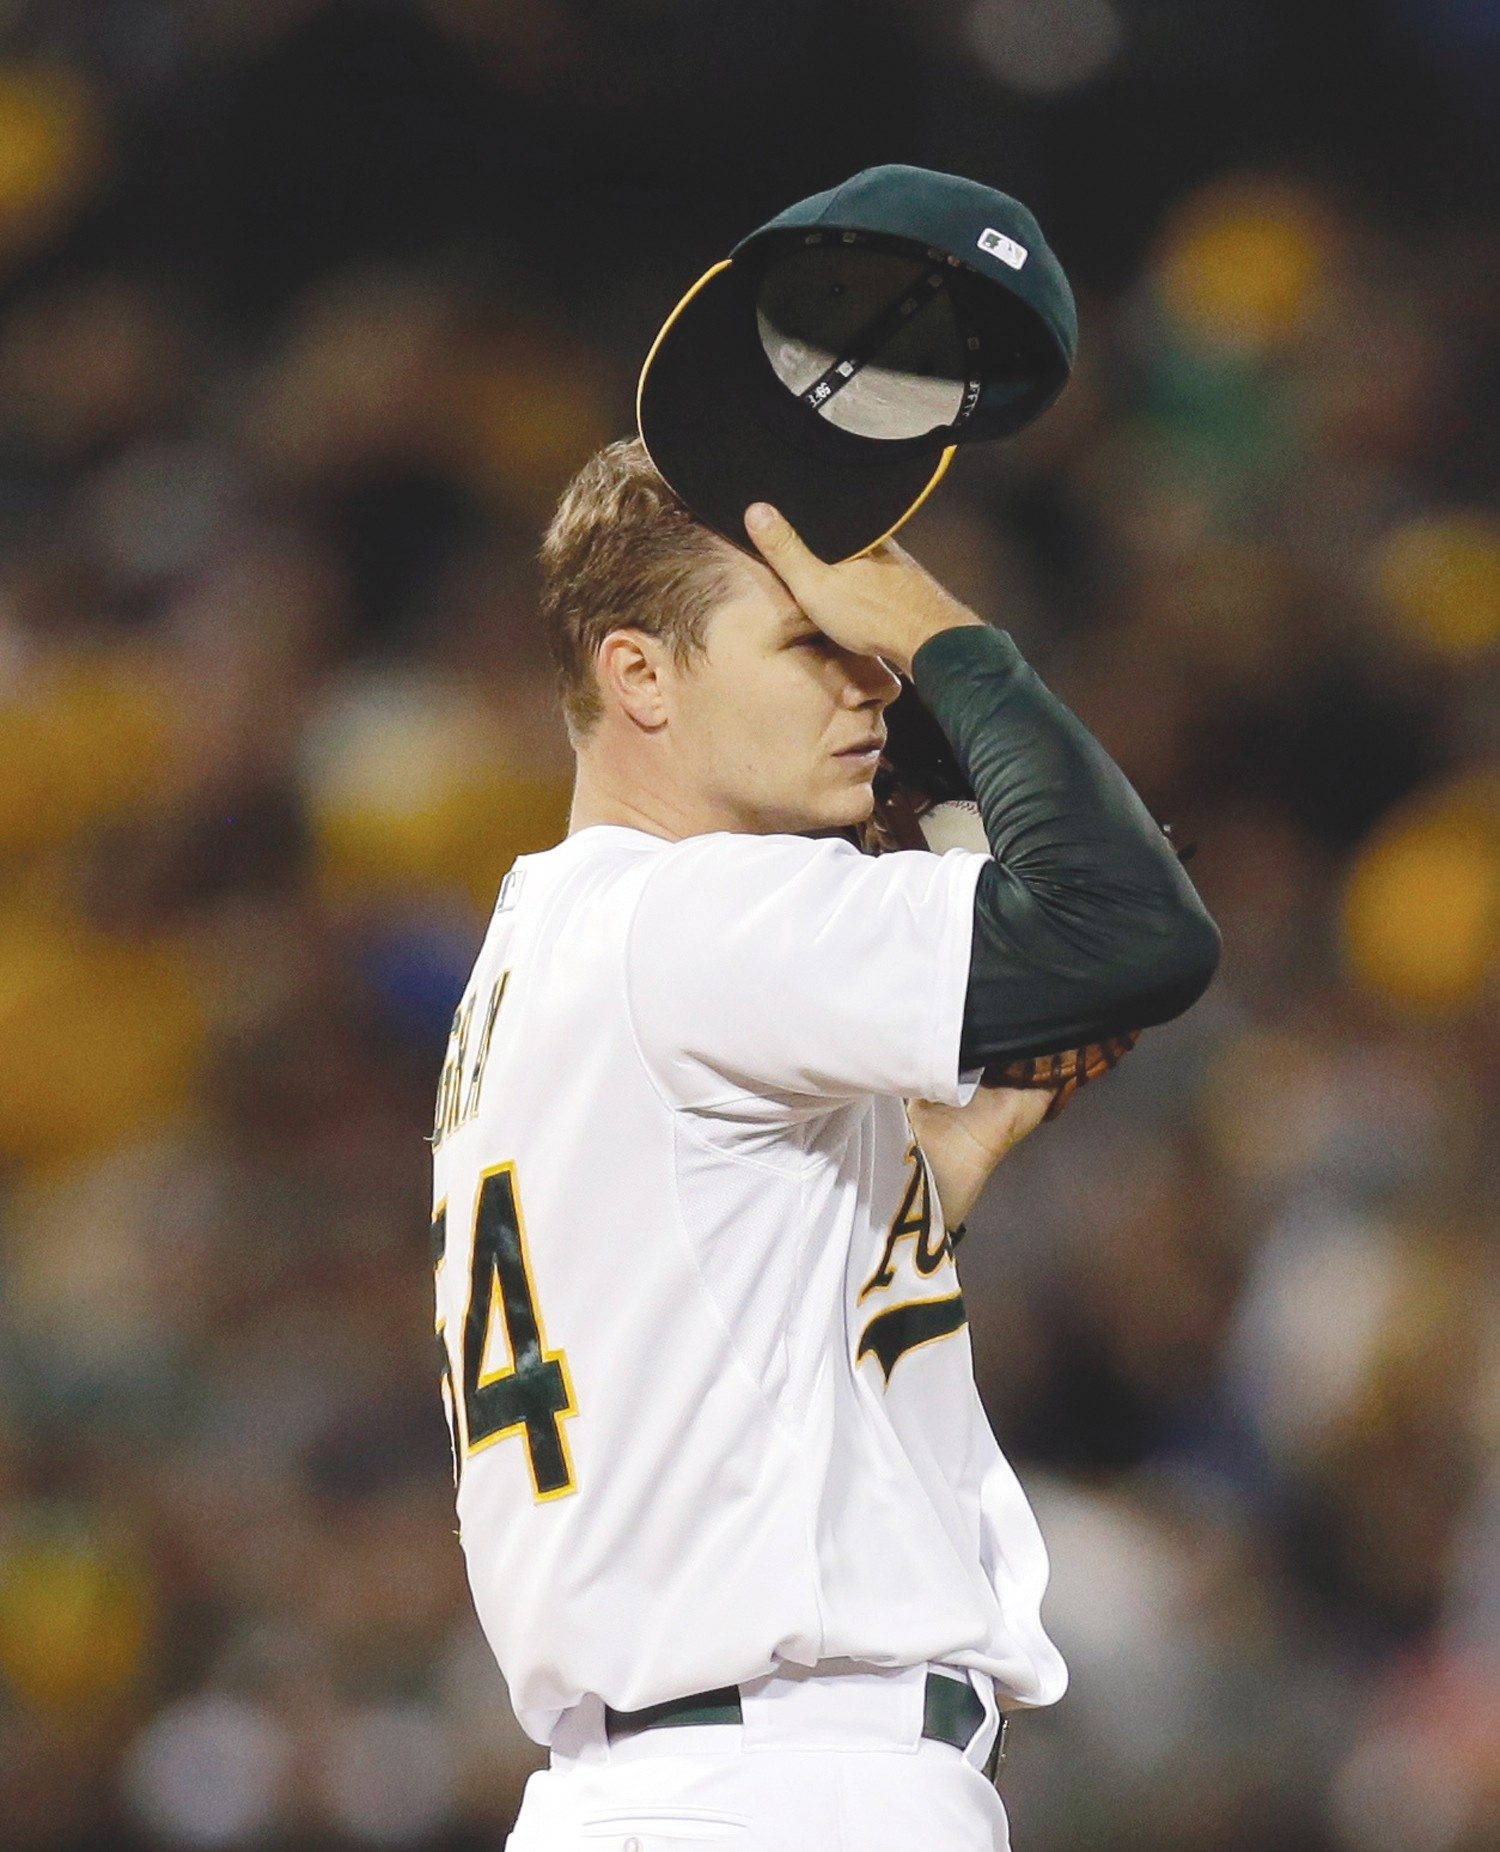 Ben Margot/APPitcher Sonny Gray and the A's were shut out for the seventh time since Aug. 1